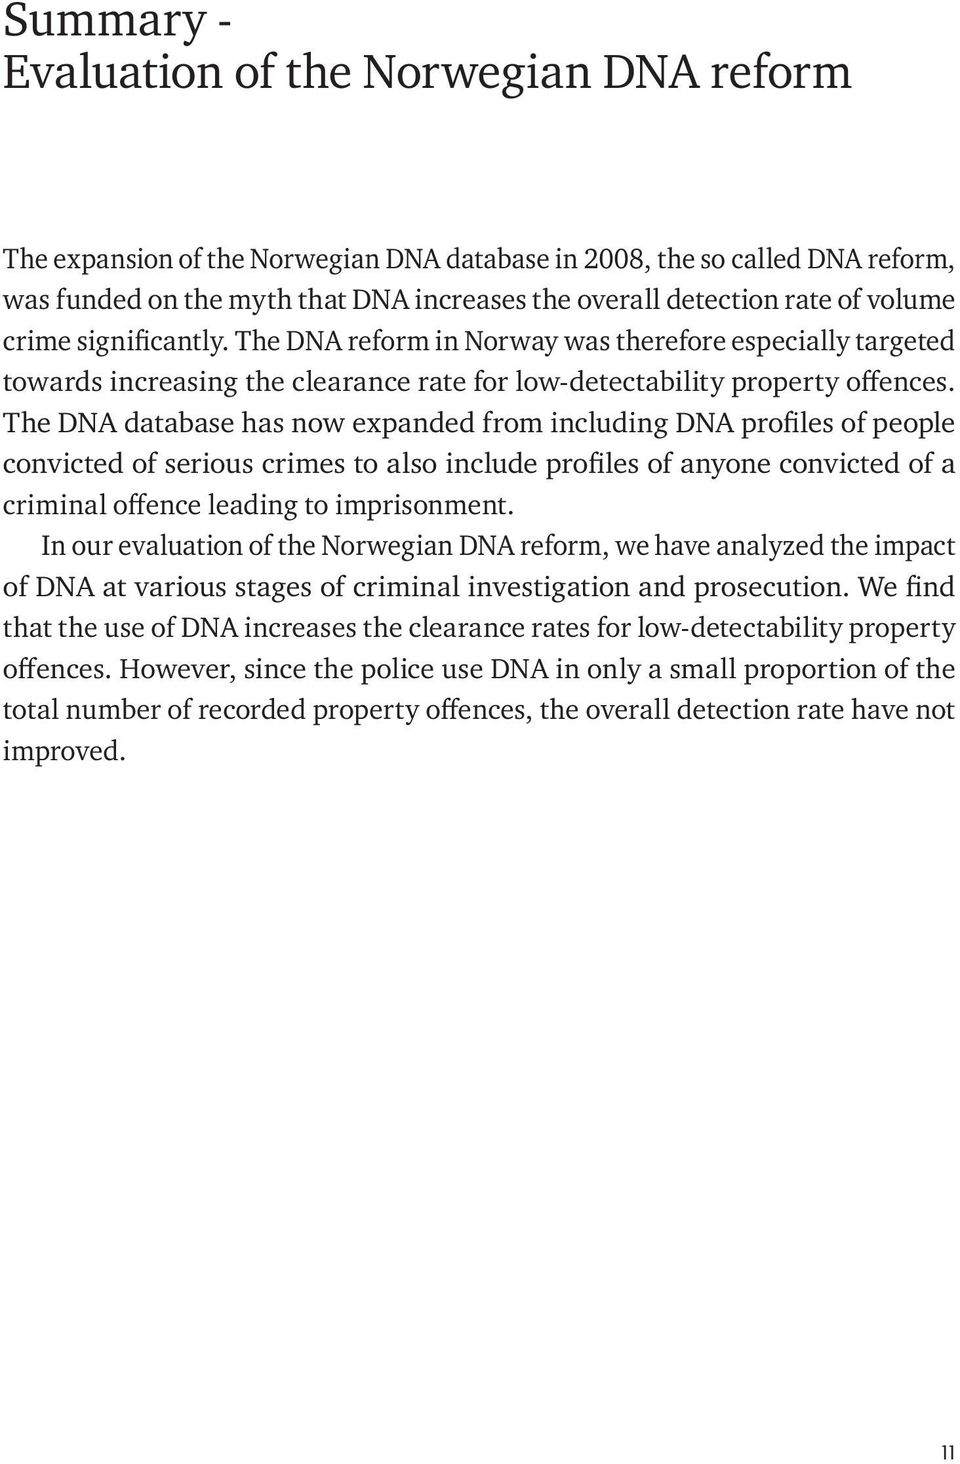 The DNA database has now expanded from including DNA profiles of people convicted of serious crimes to also include profiles of anyone convicted of a criminal offence leading to imprisonment.